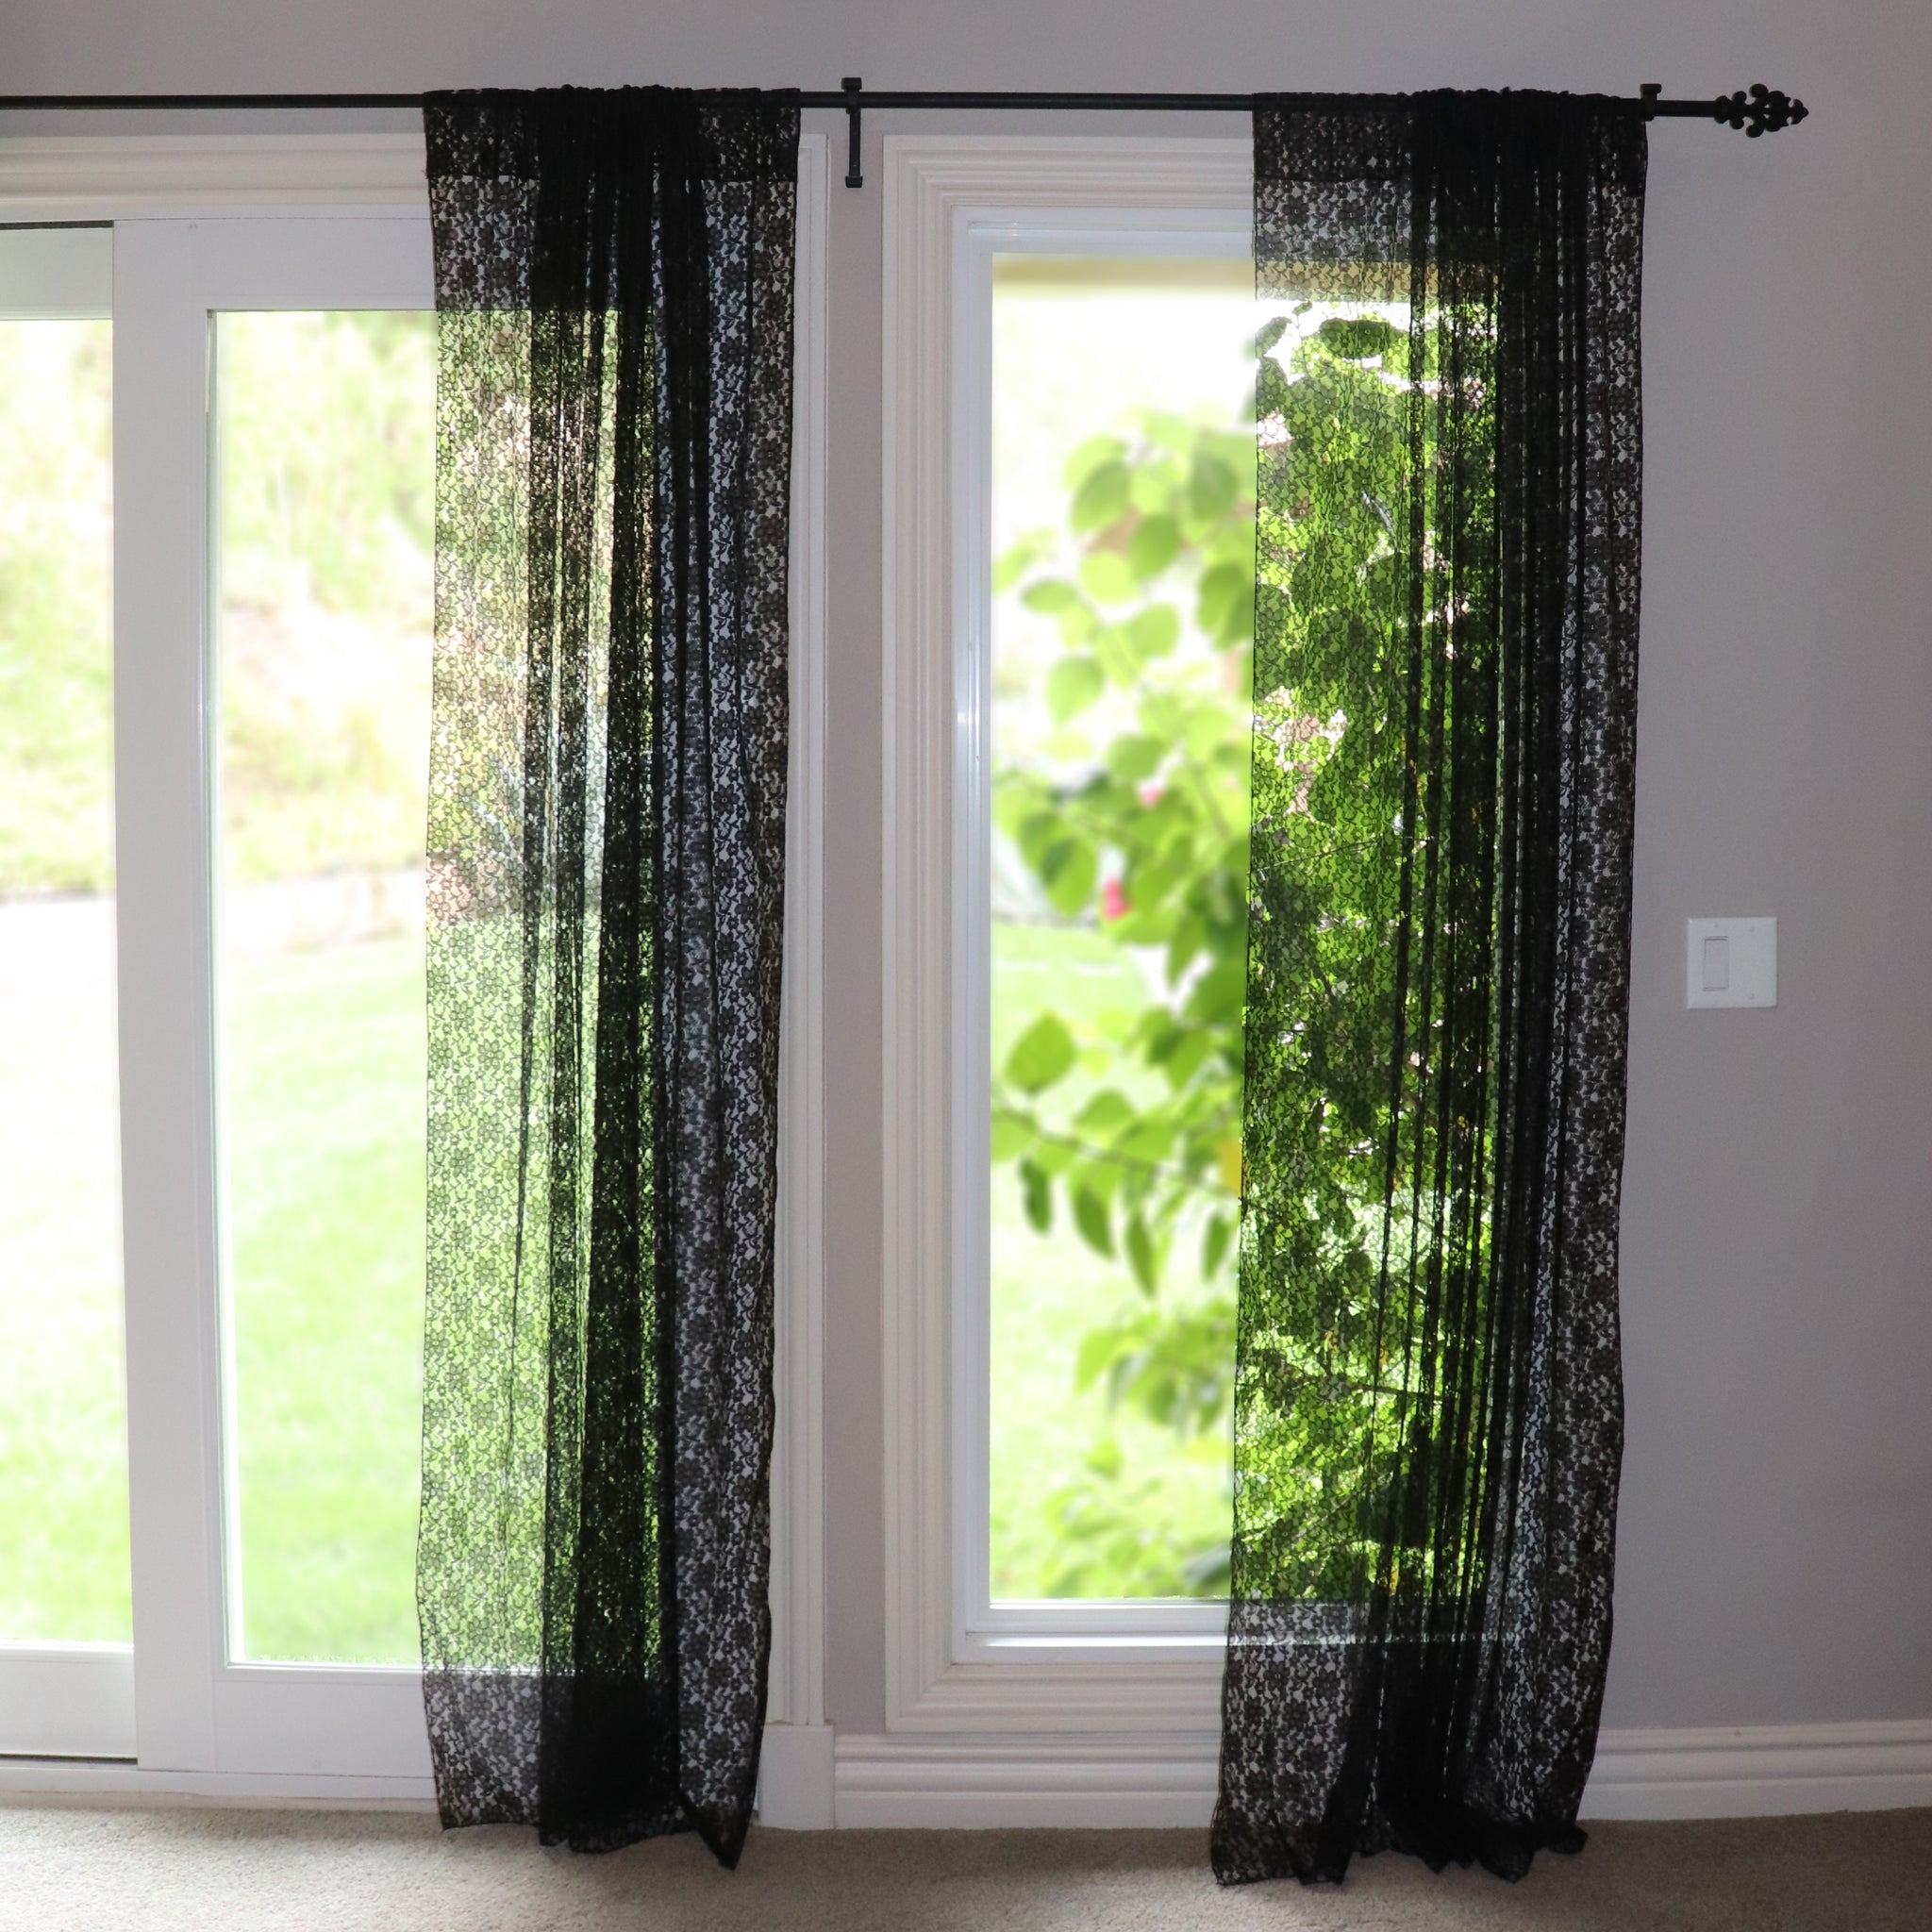 Floral Lace Window Curtain 58 Inch Wide Black Lovemyfabric